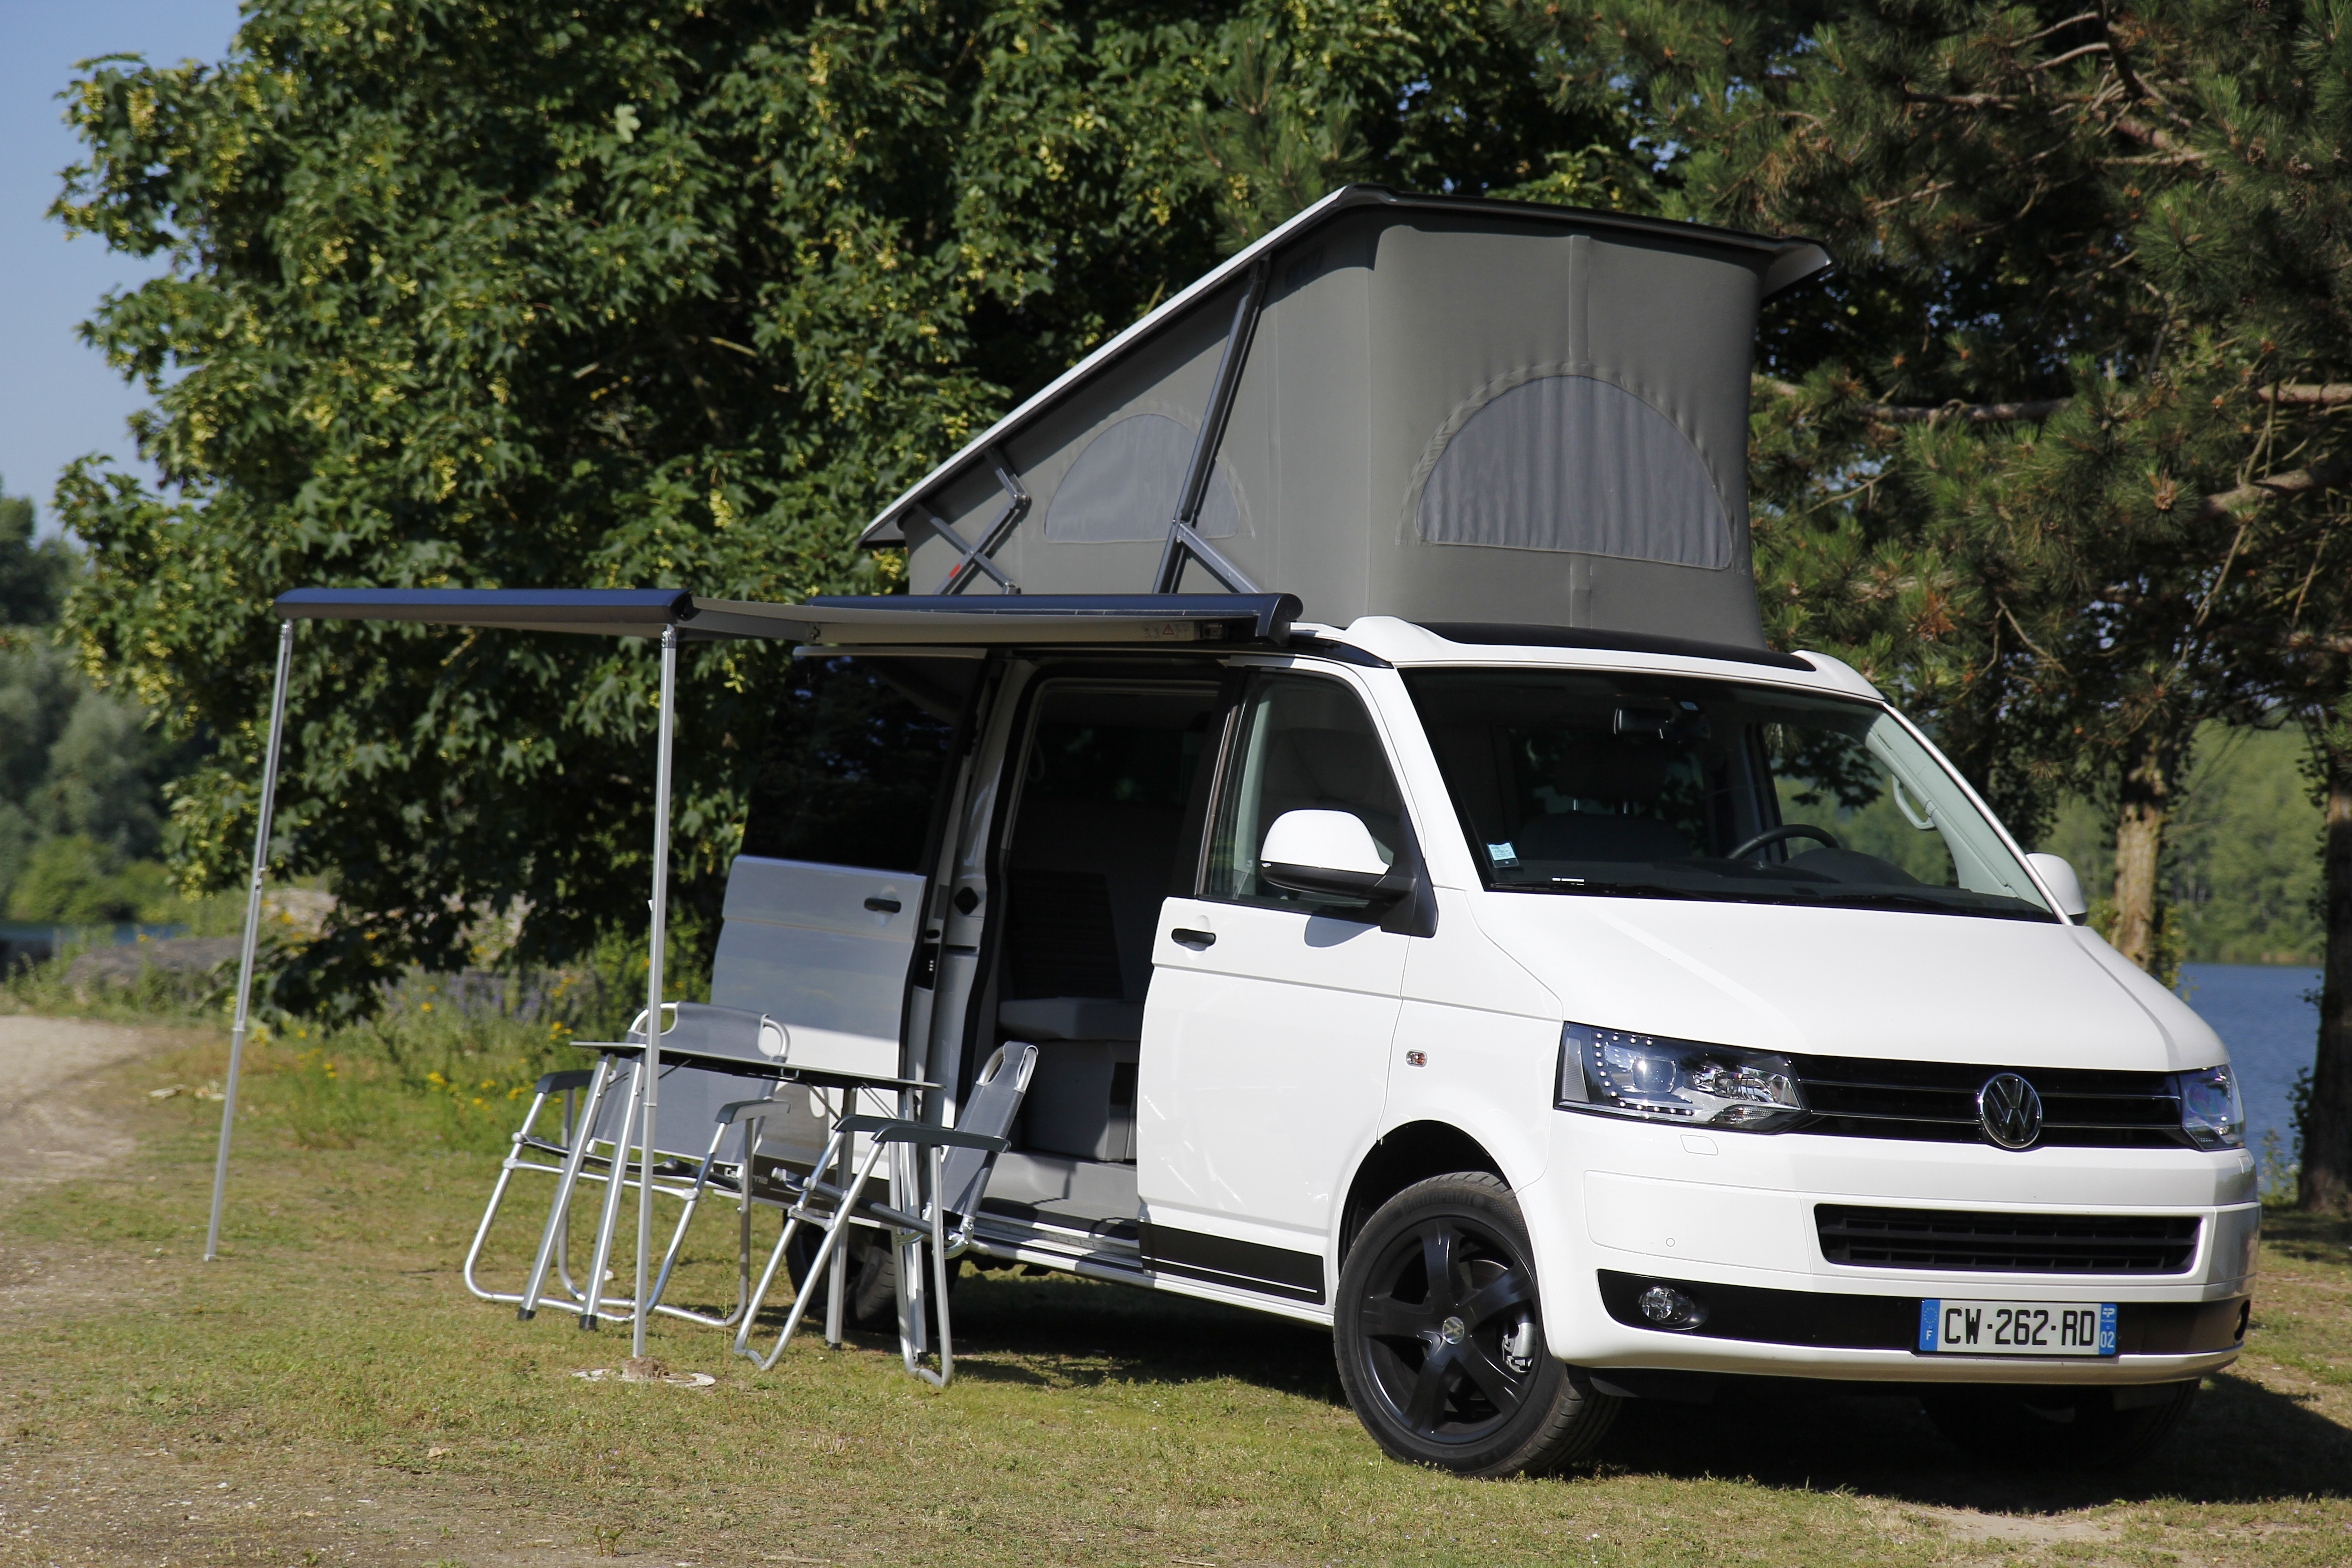 Achat camping car t4 vw occasion